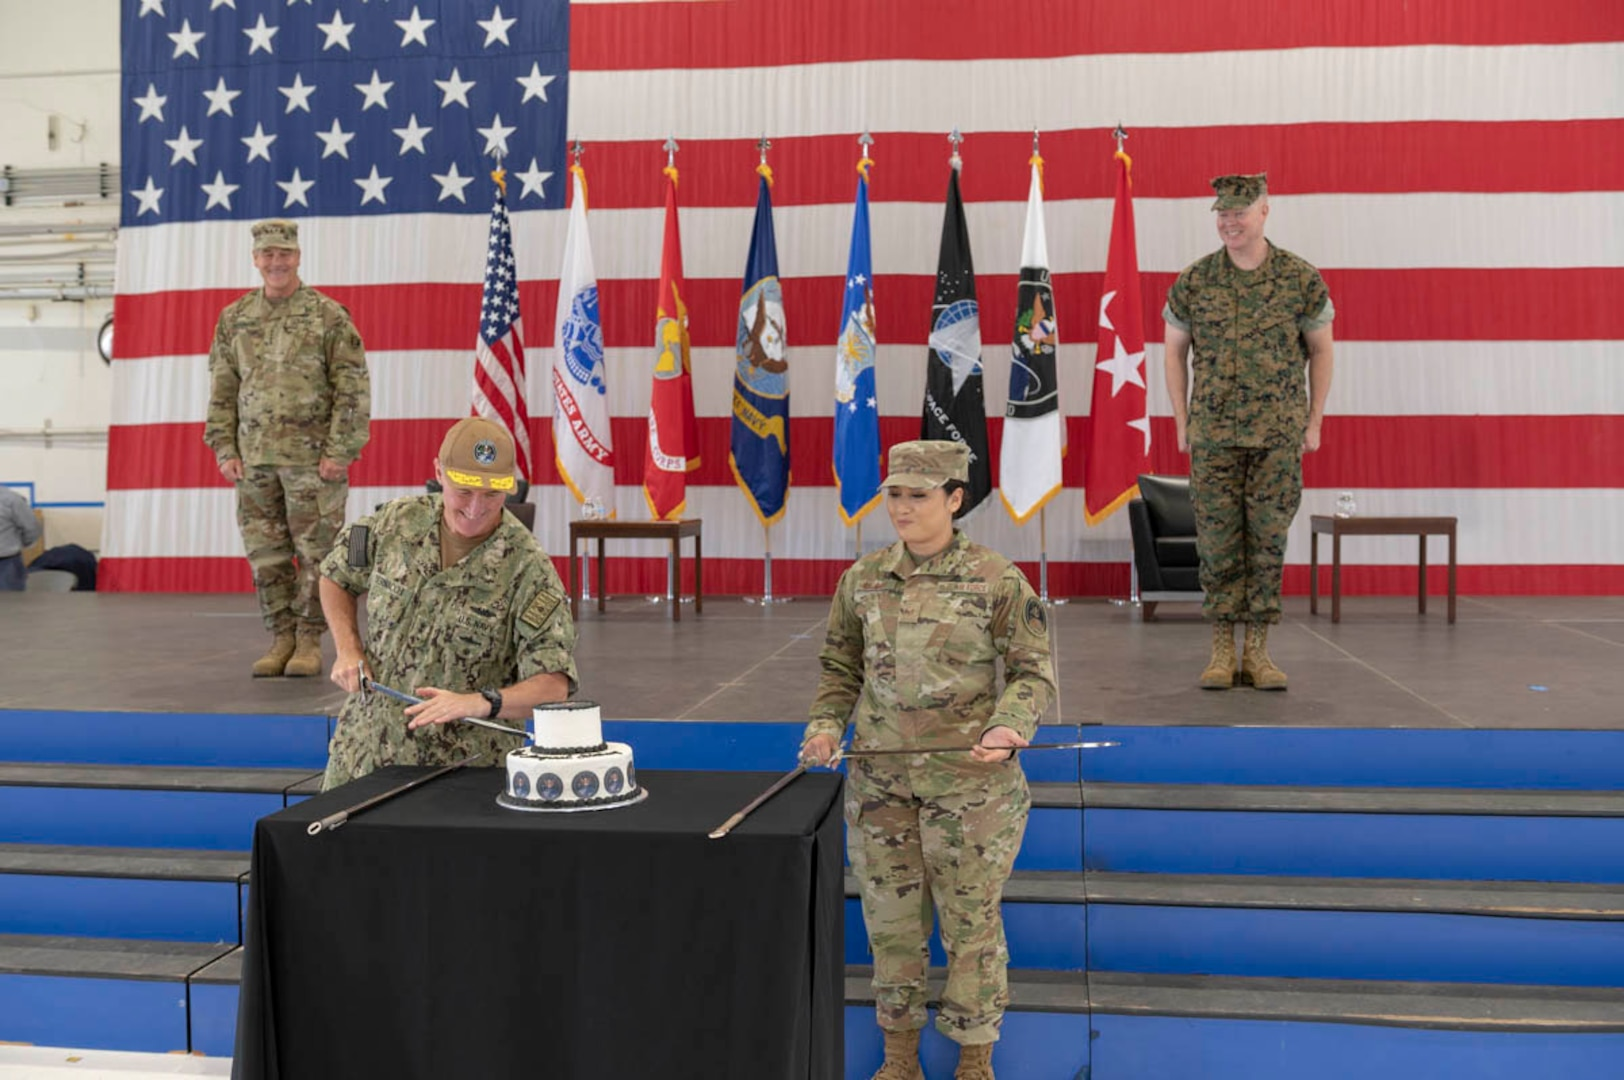 "U.S. Navy Rear Adm. Michael Bernacchi, rightt, and U.S. Air Force Staff Sgt. Kiara Kashner, right, representing U.S. Space Command's longest-serving and junior-serving members, respectively, cut a cake in honor of the combatant command's first birthday Aug. 28, 2020, at Peterson Air Force Base, Colorado. Kashner serves as executive assistant to the commandant and Bernacchi is Strategy, Plans and Policy director. USSPACECOM was officially established Aug. 29, 2019, during a ceremony in the White House Rose Garden with President Donald Trump; Dr. Mark T. Esper. Secretary of Defense; and Gen. John W. ""Jay"" Raymond, former USSPACECOM commander and current U.S. Space Force Chief of Space Operations; and Chief Master Sgt. Roger Towberman, former USSPACECOM command senior enlisted leader and current USSF CSEL."